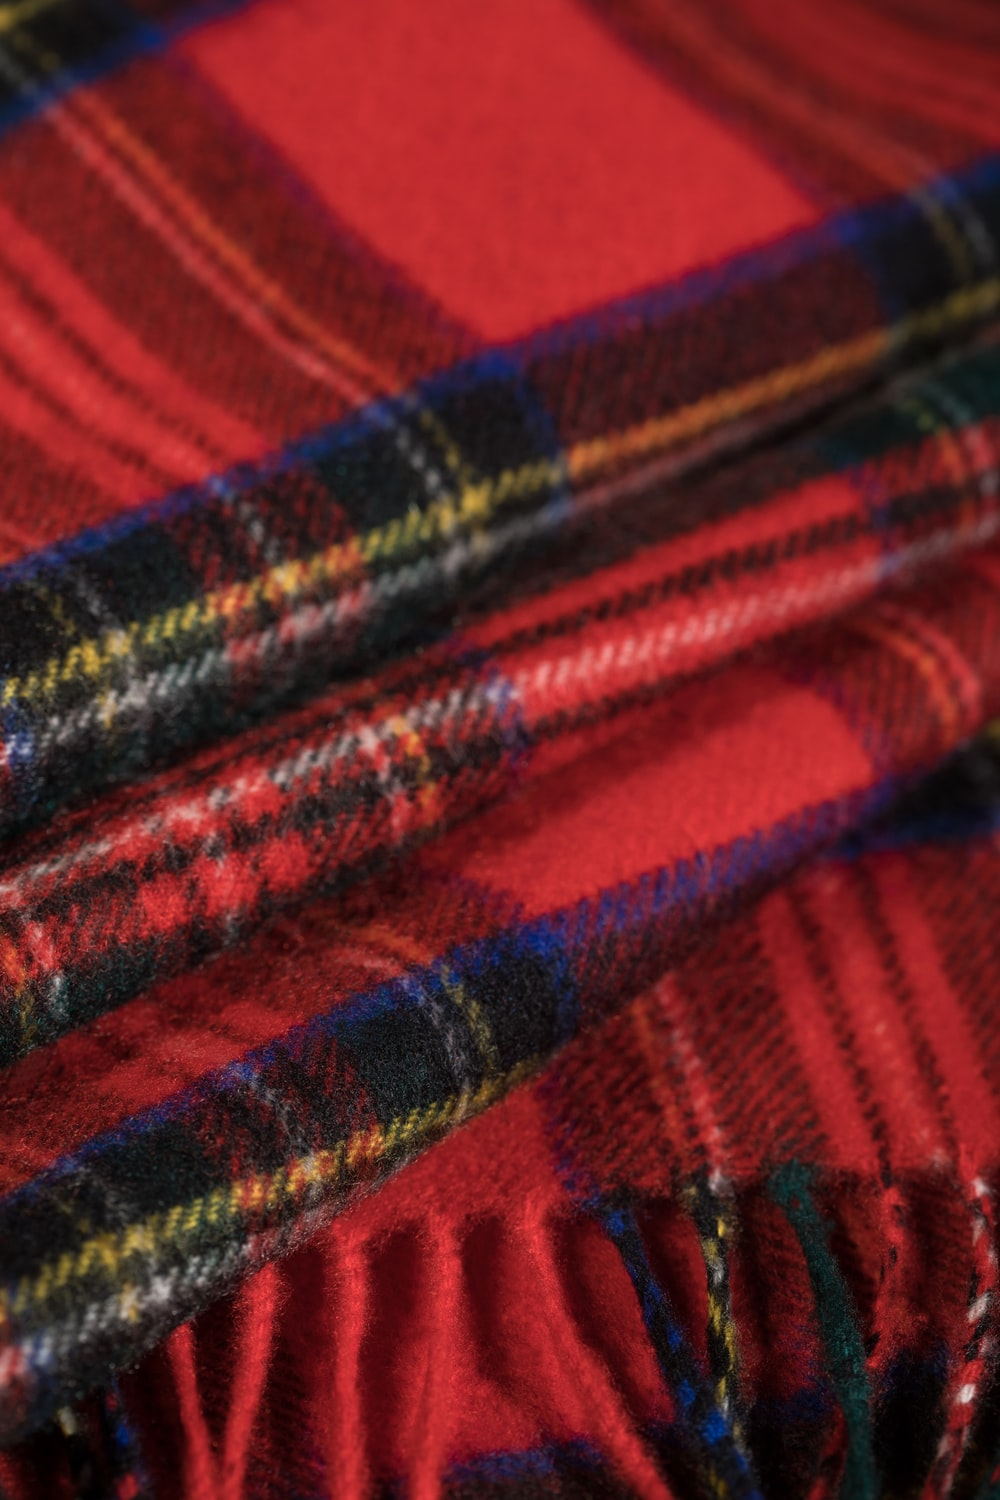 red blue and black plaid textile